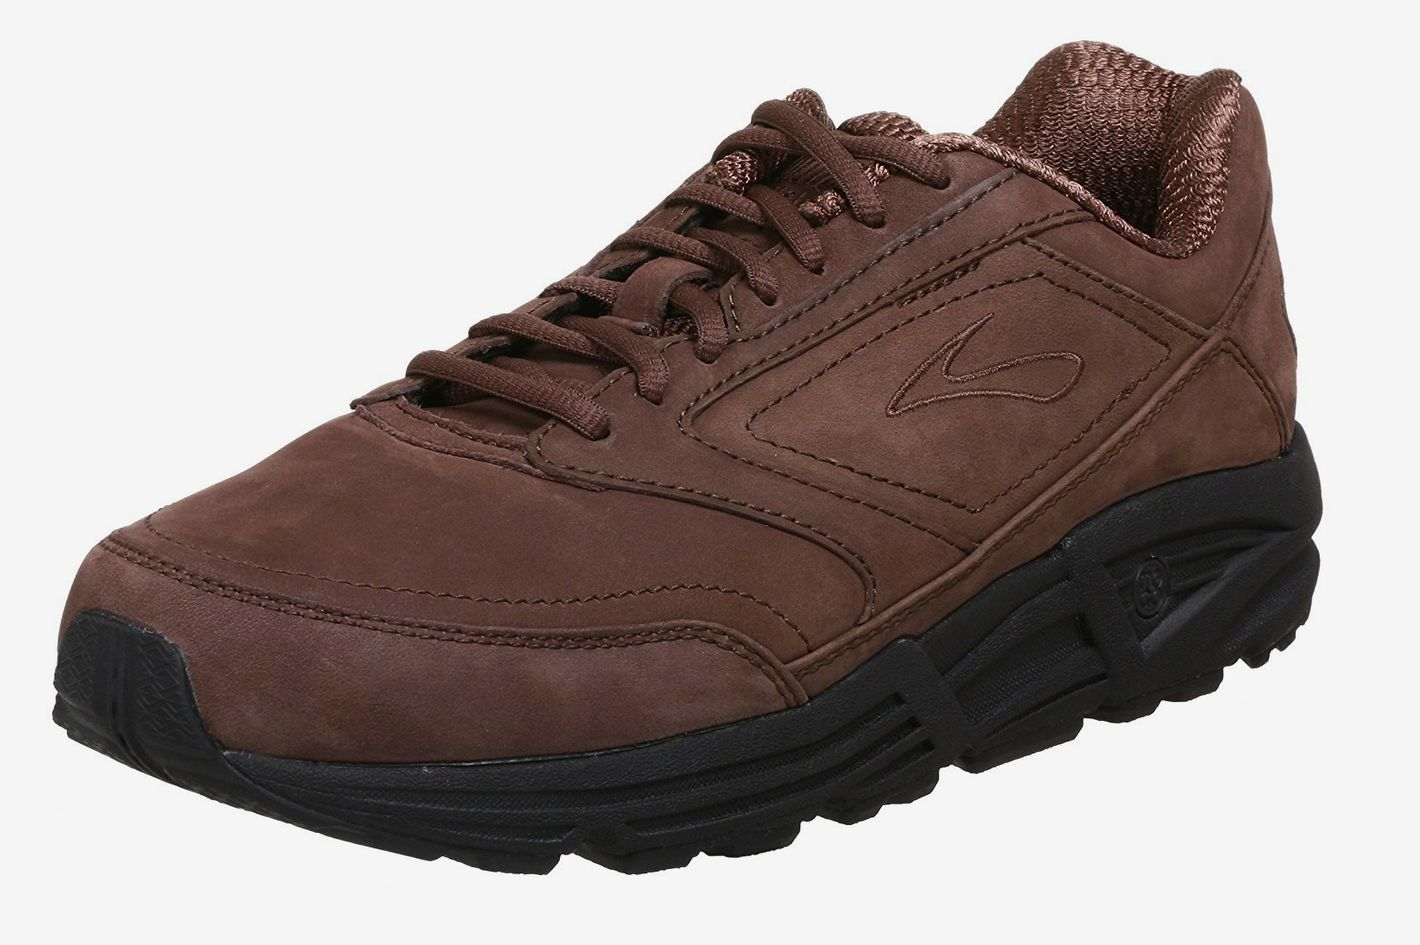 251379fe8914f7 Brooks Men s Addiction Walking Shoes at Amazon